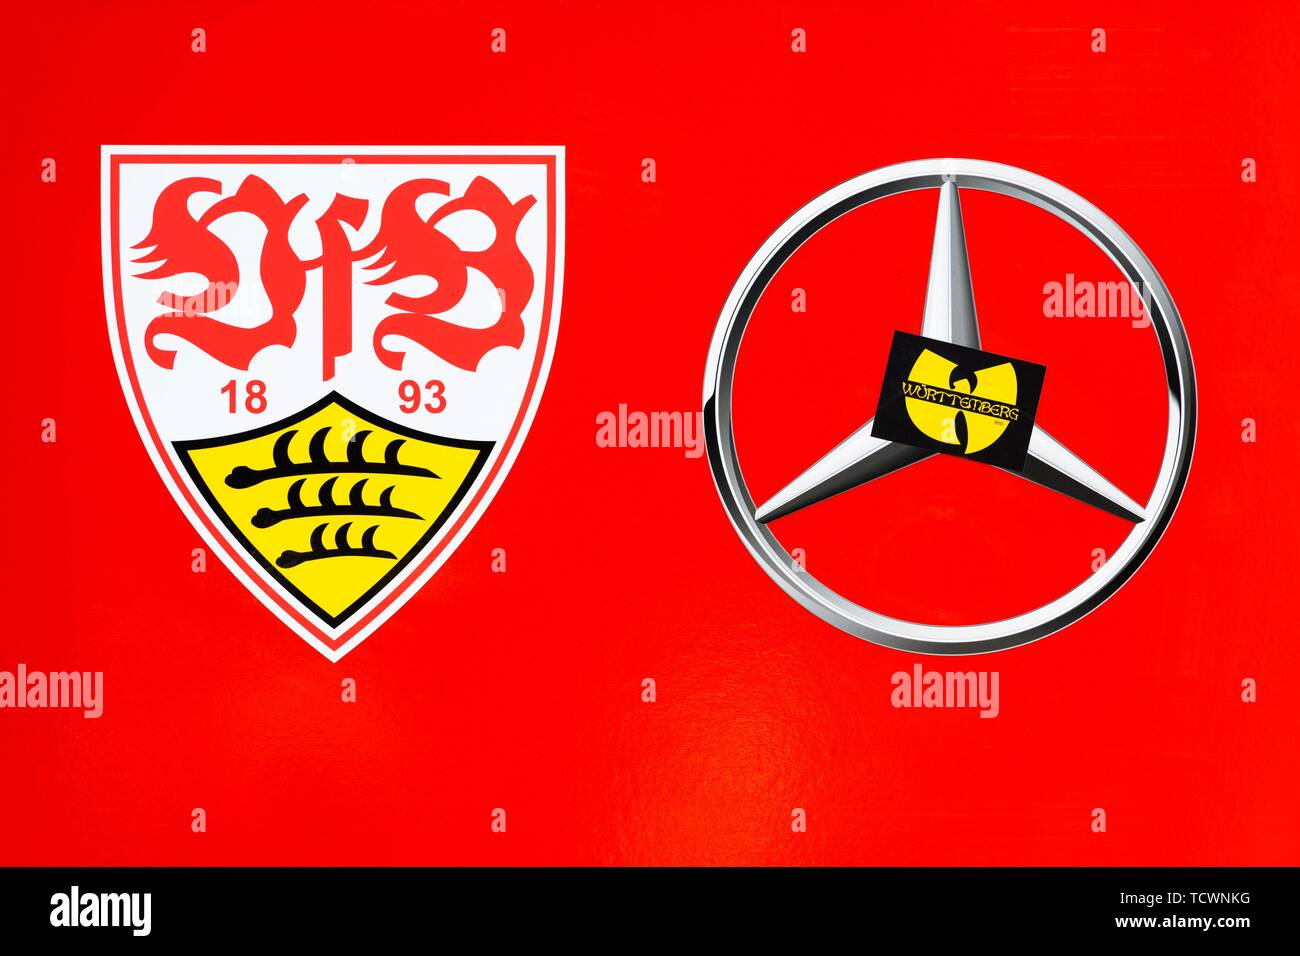 9998a0e0 Logos, football club VFB Stuttgart, sponsor Mercedes Benz, Germany - Stock  Image